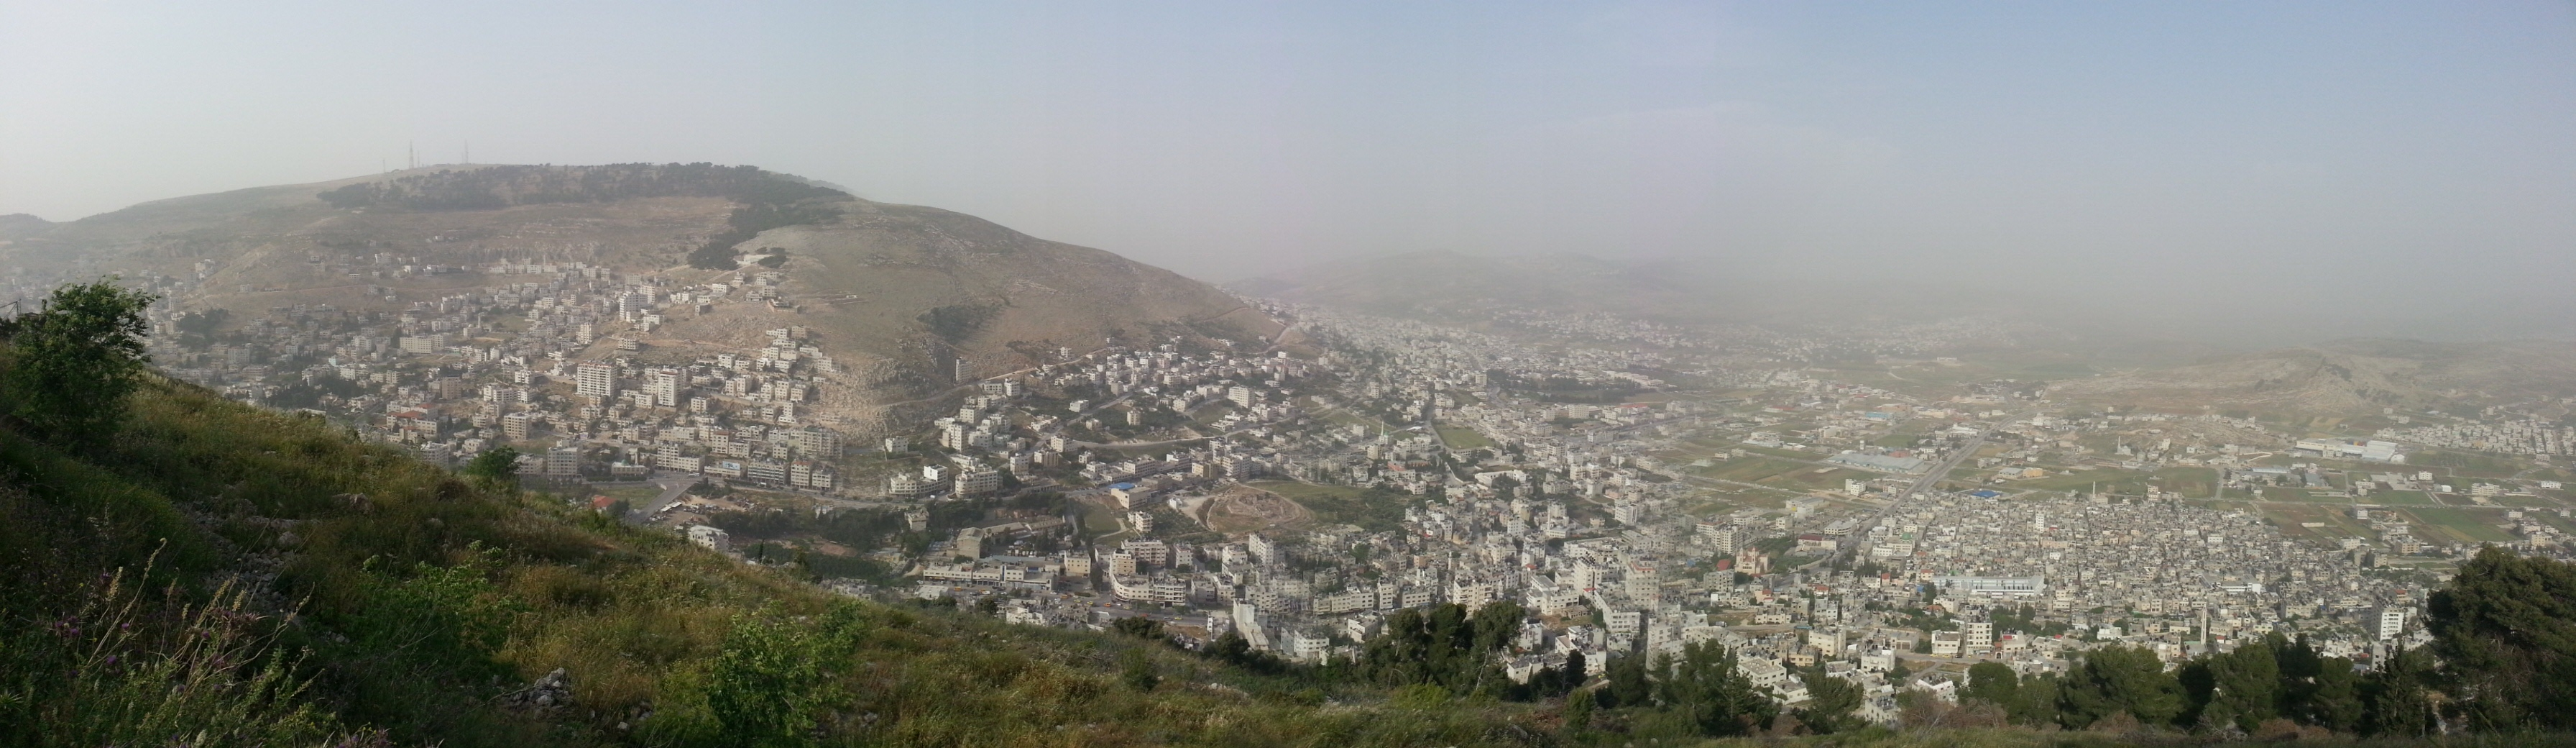 View over Nablus / Shechem from Mt Gerizim